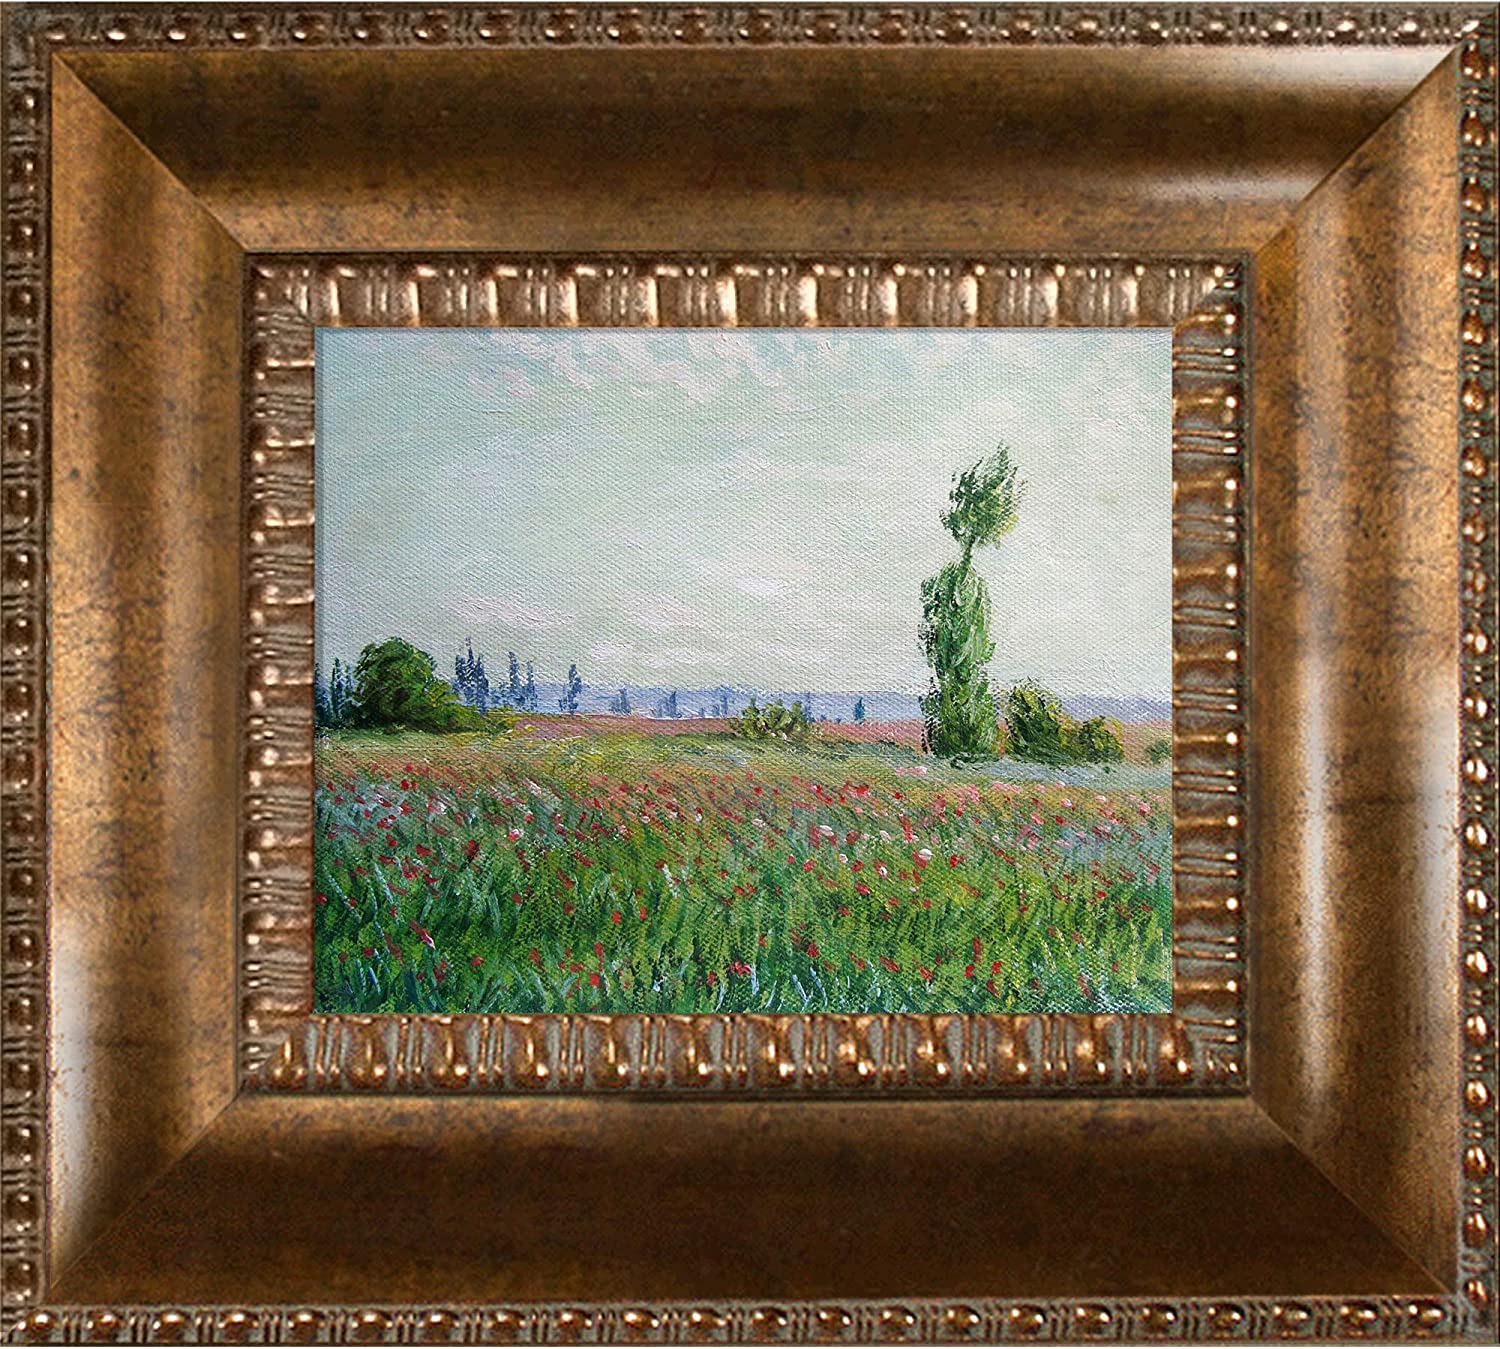 overstockArt Monet The Fields of El Poppies Dorado with Limited time cheap sale Free Shipping New Artwork